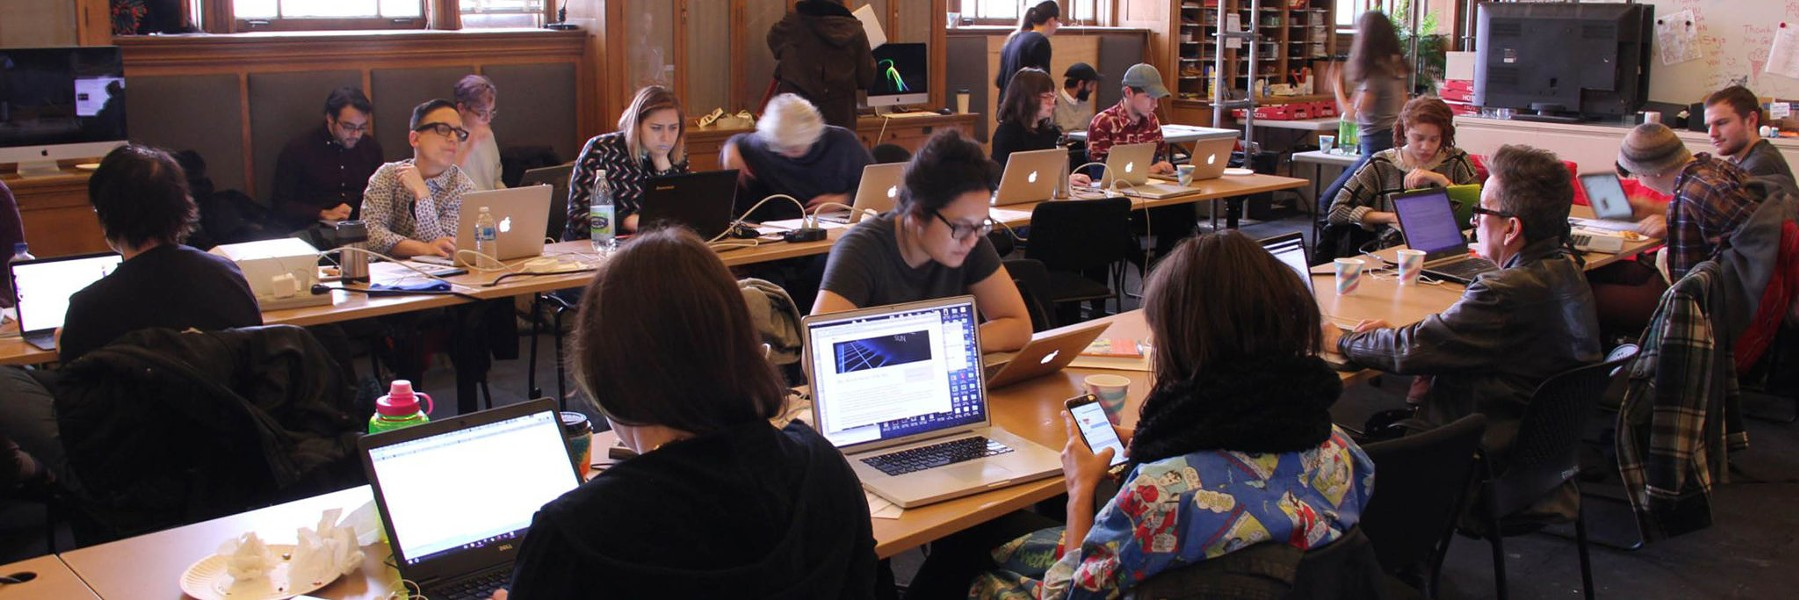 2016 Art+Feminism Edit-A-Thon at Carnegie Mellon University - CARNEGIE MELLON UNIVERSITY